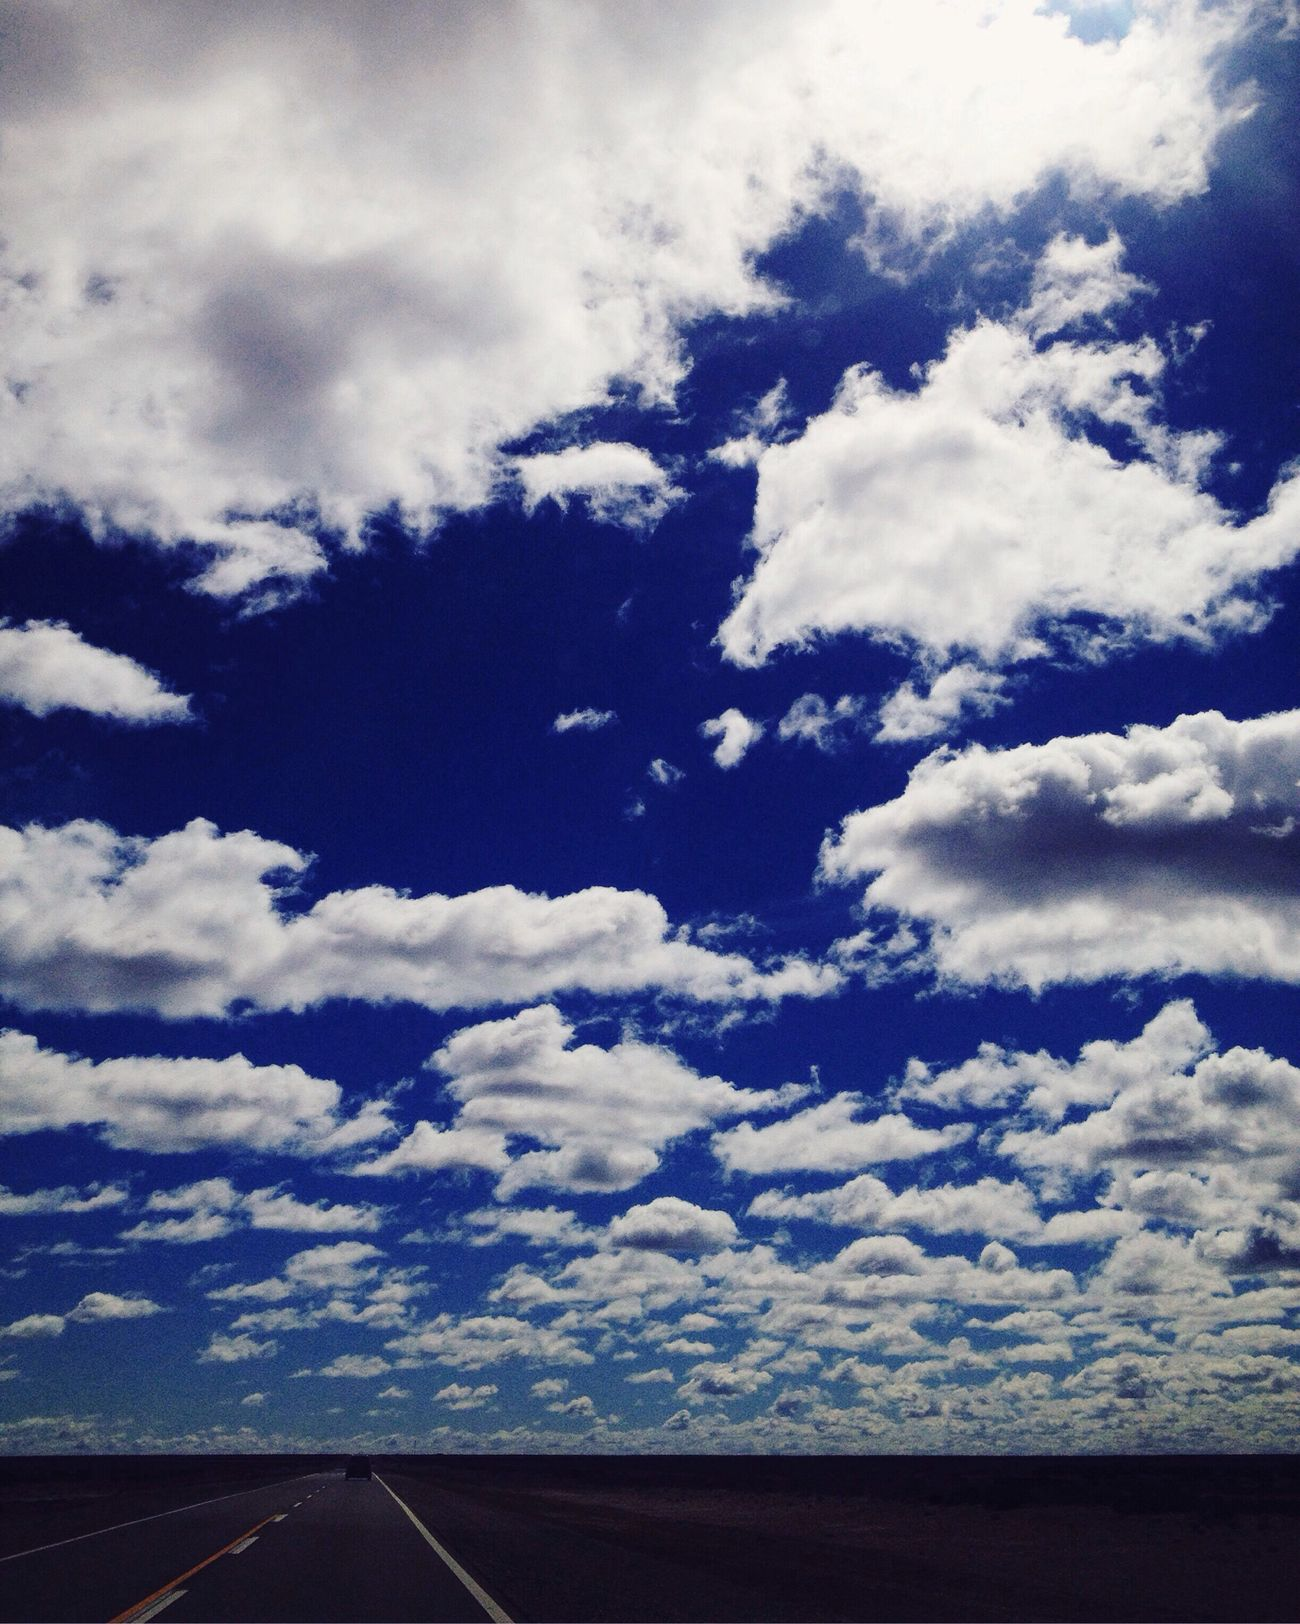 Route Cloud - Sky No People Day Sky Clouds And Sky IPhoneography Ontheroad